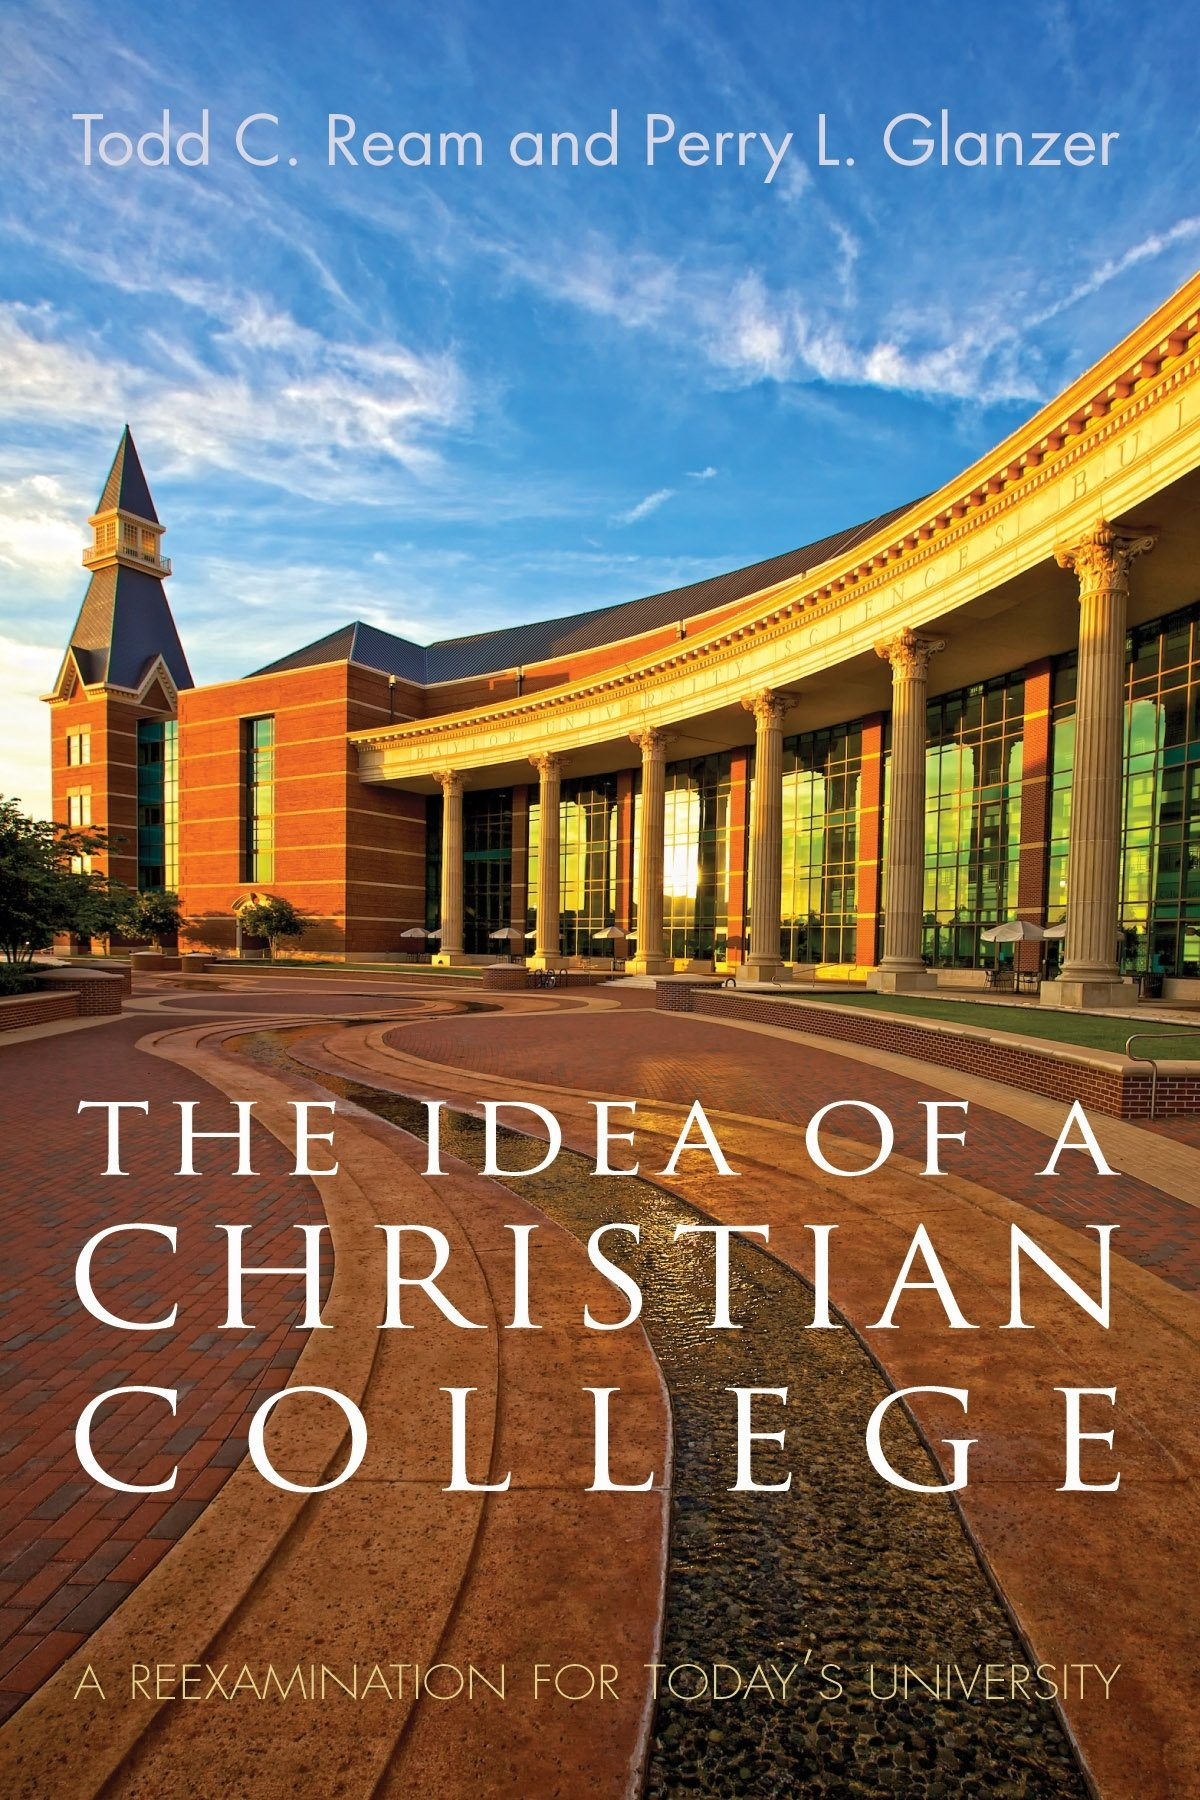 the idea of a christian college | wipfandstock